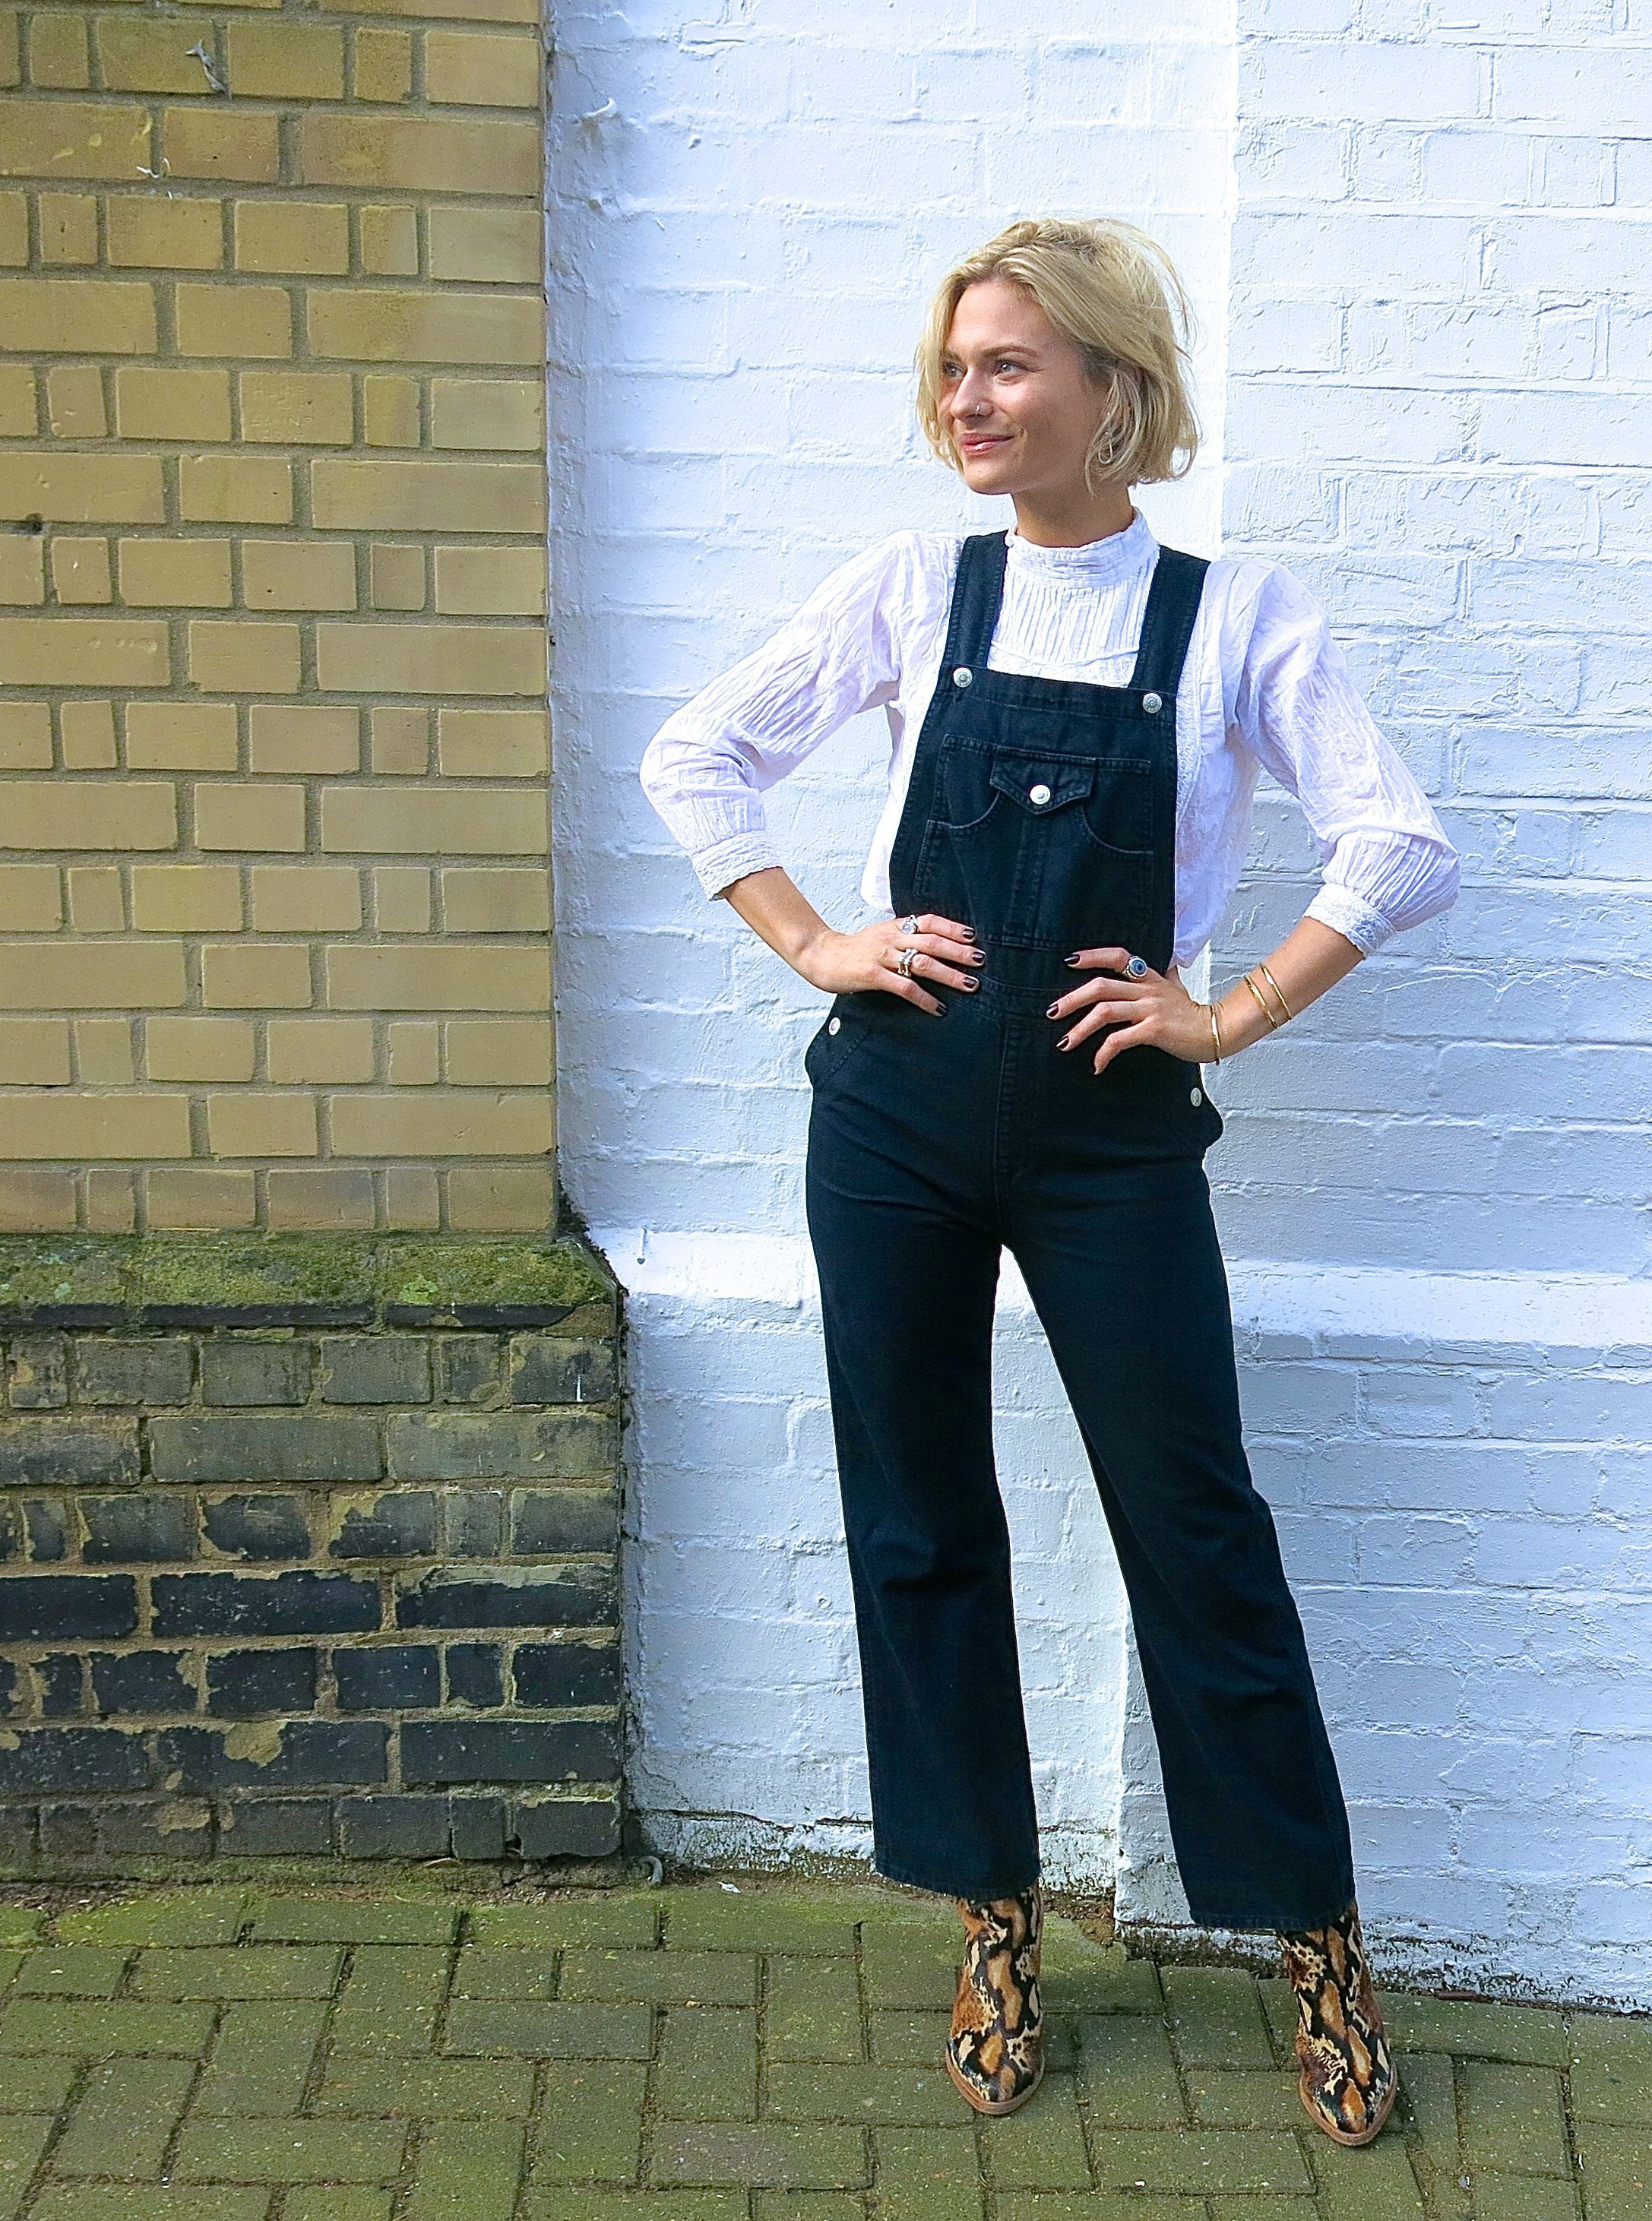 d0de11fdfa6  pinsykes   Pandora Sykes wearing The Tennessee Overall from the Alexa Chung  for AG collection  ACforAG